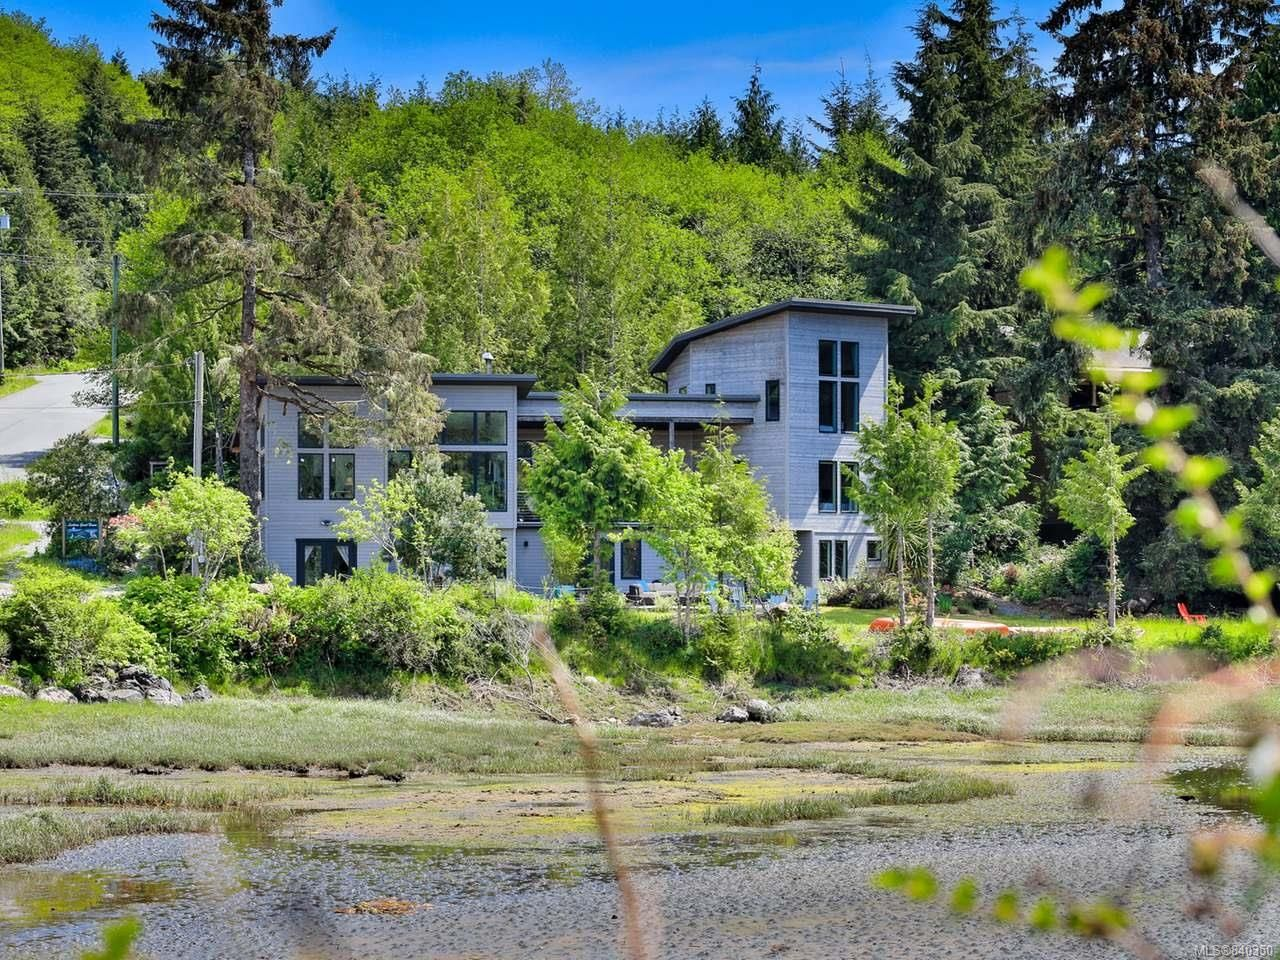 Photo 73: Photos: 1068 Helen Rd in UCLUELET: PA Ucluelet House for sale (Port Alberni)  : MLS®# 840350